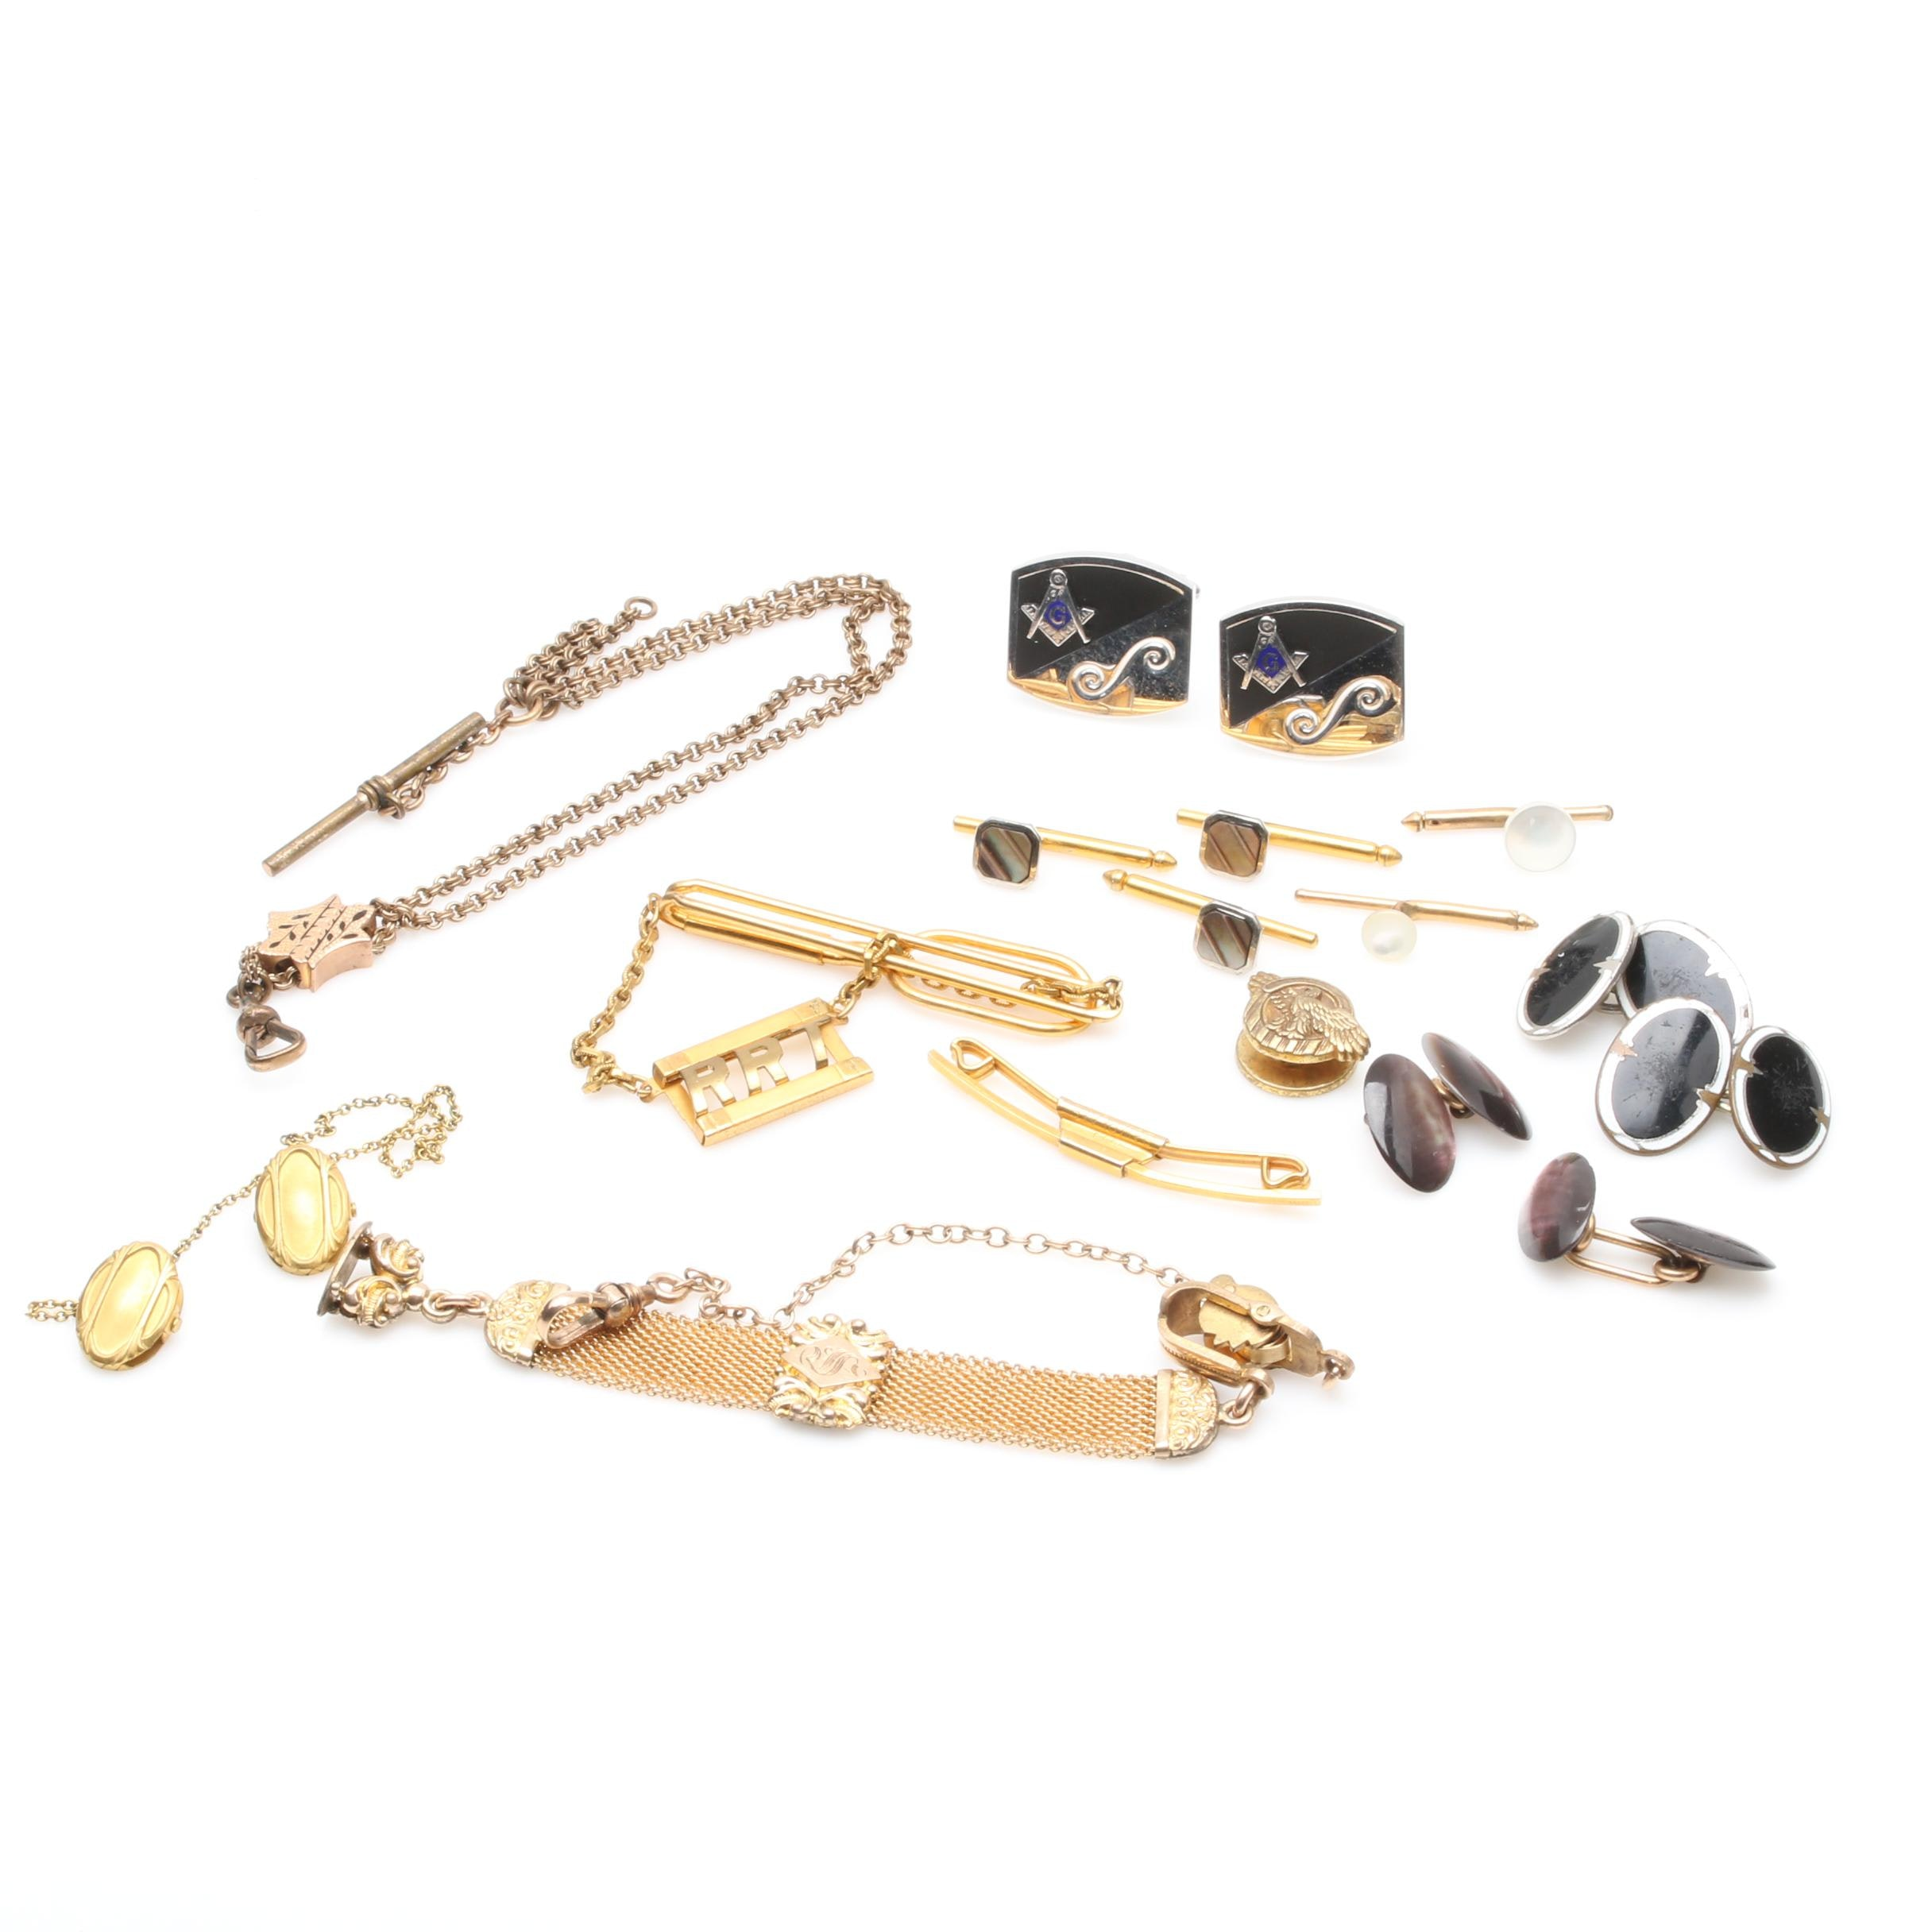 Assorted Gold and Silver Tone Jewelry Featuring Mother of Pearl Cufflinks